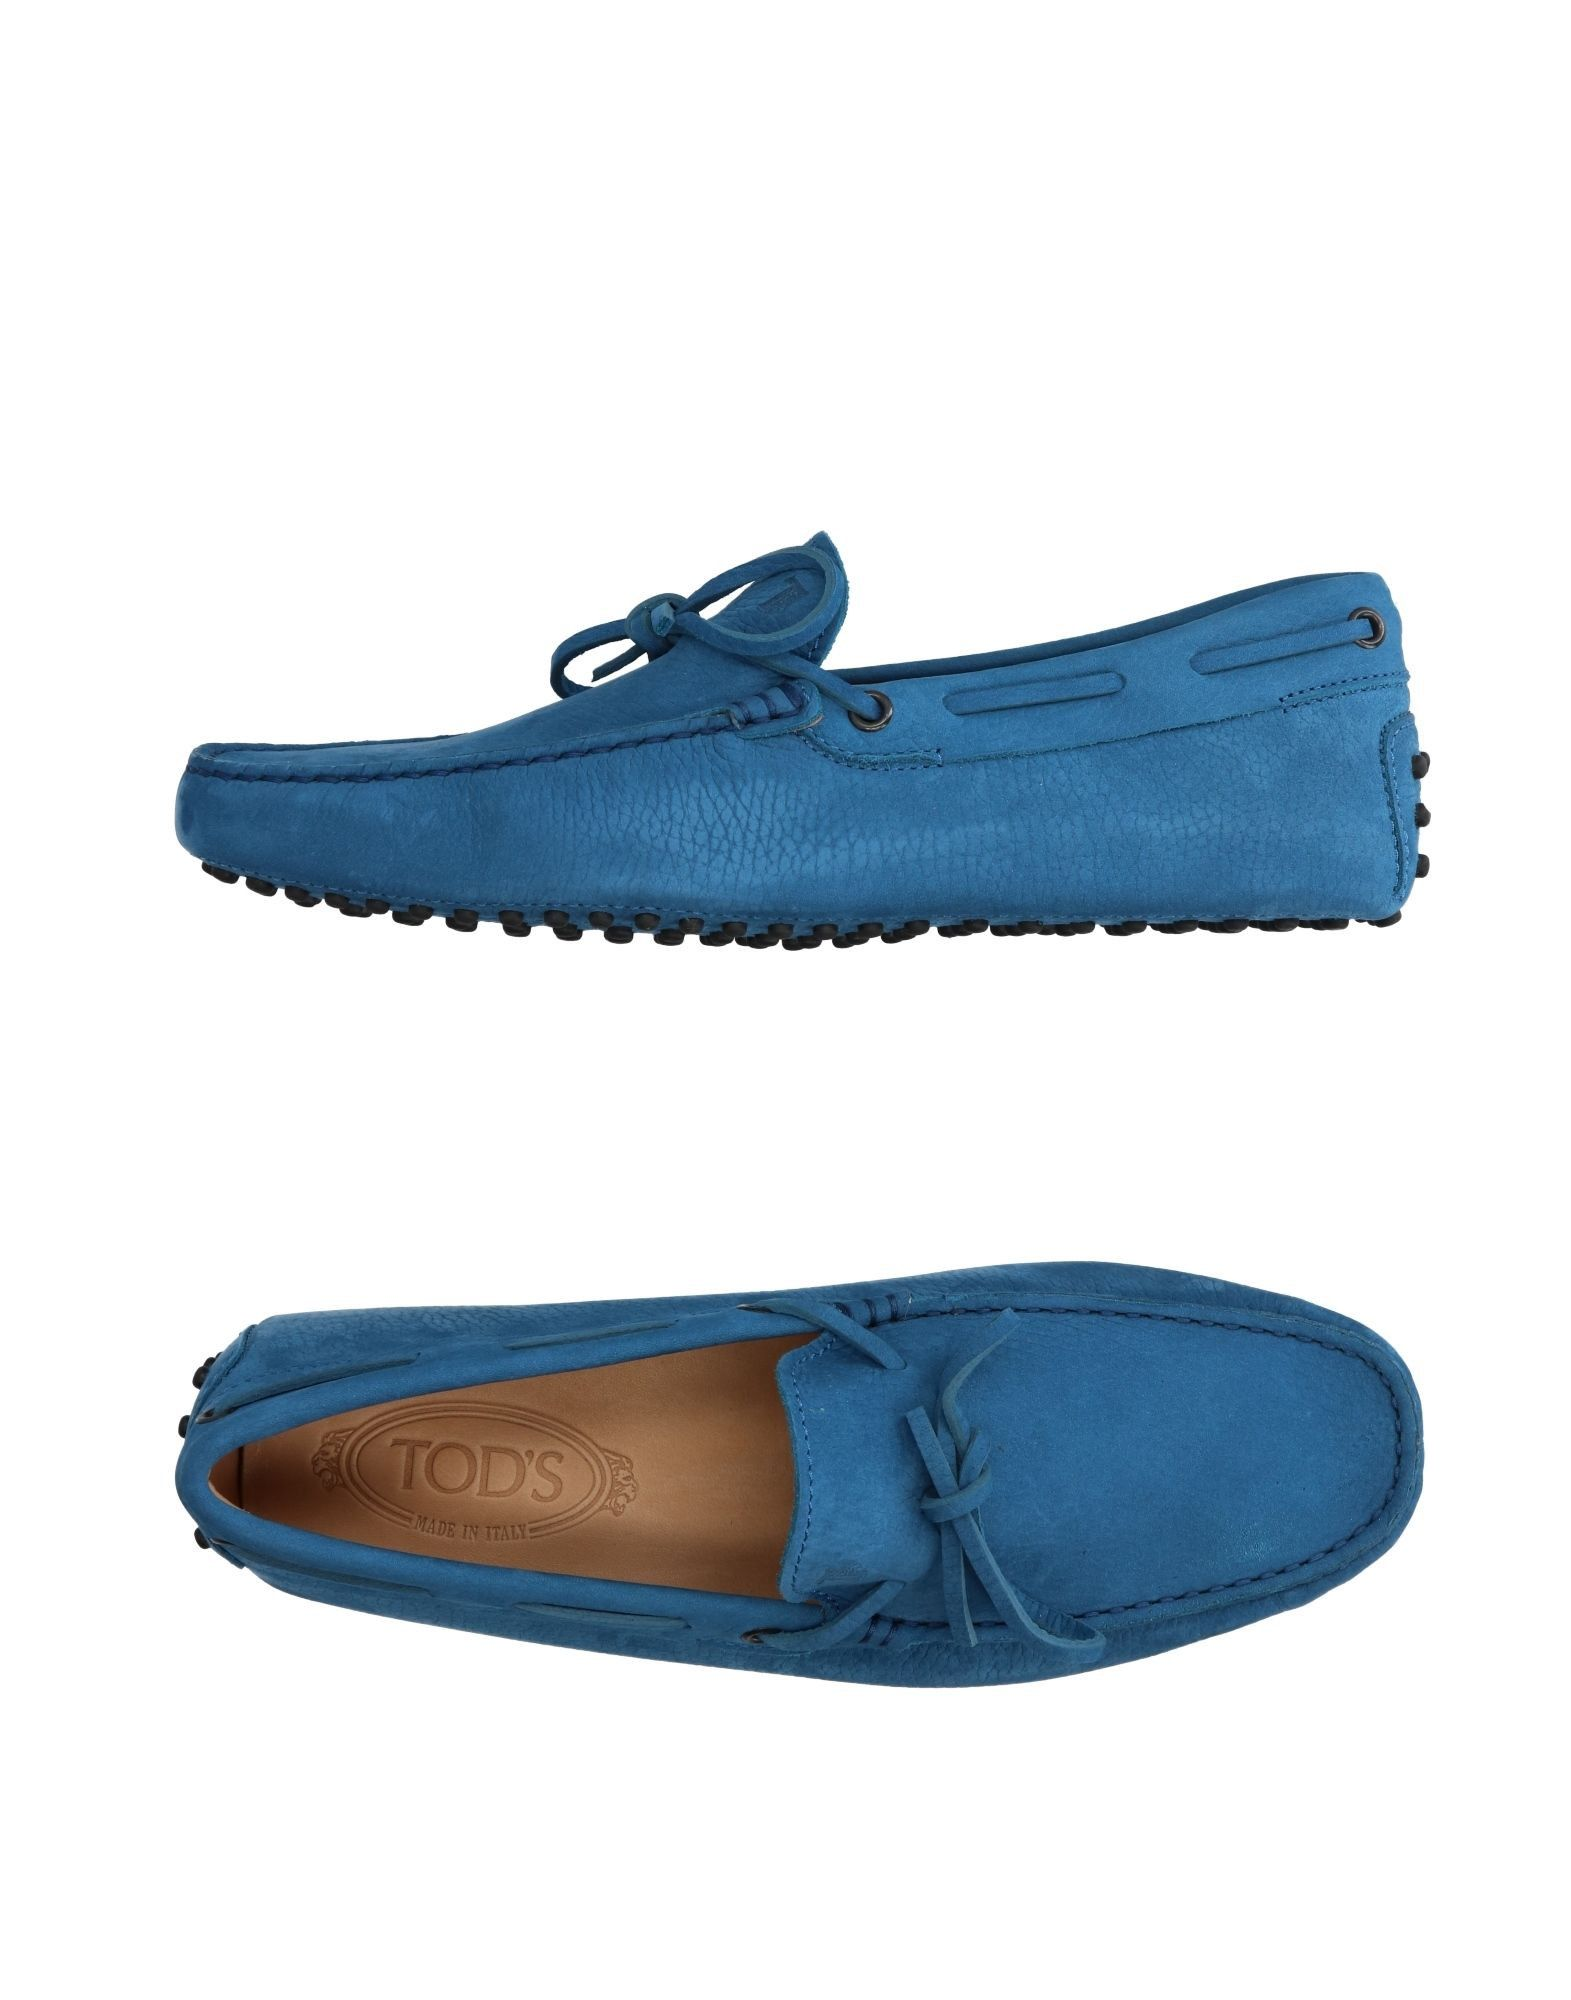 TOD'S Loafer. #tods #shoes #